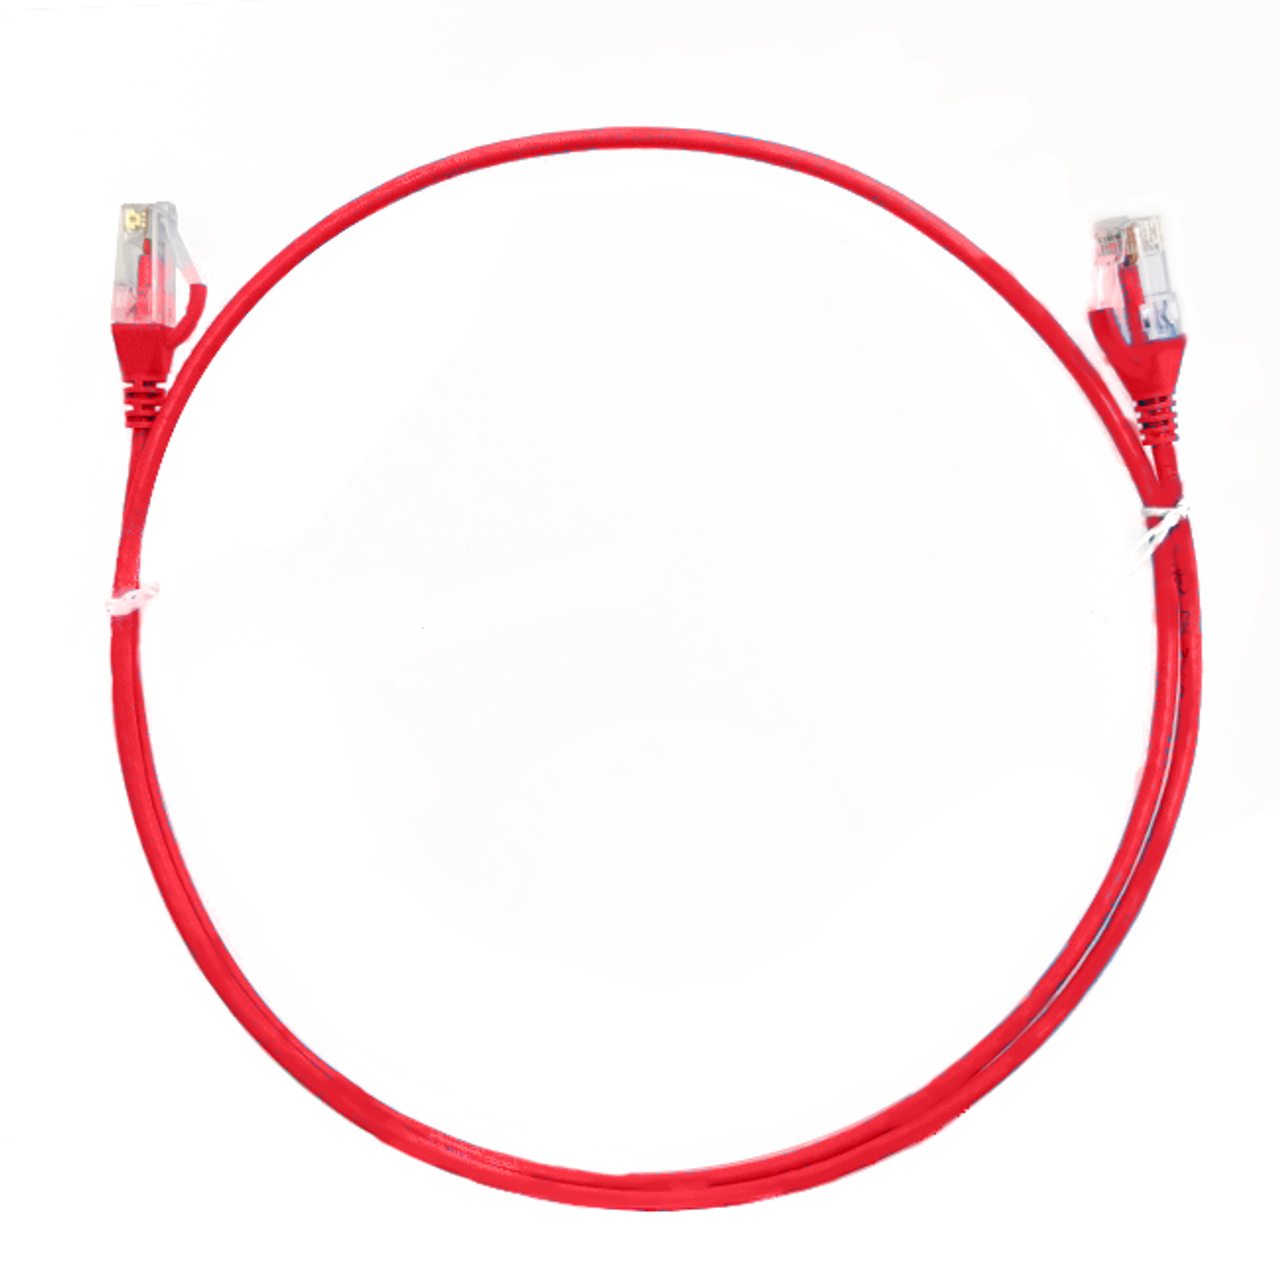 Image for 3m Cat 6 Ultra Thin LSZH Ethernet Network Cables: Red CX Computer Superstore